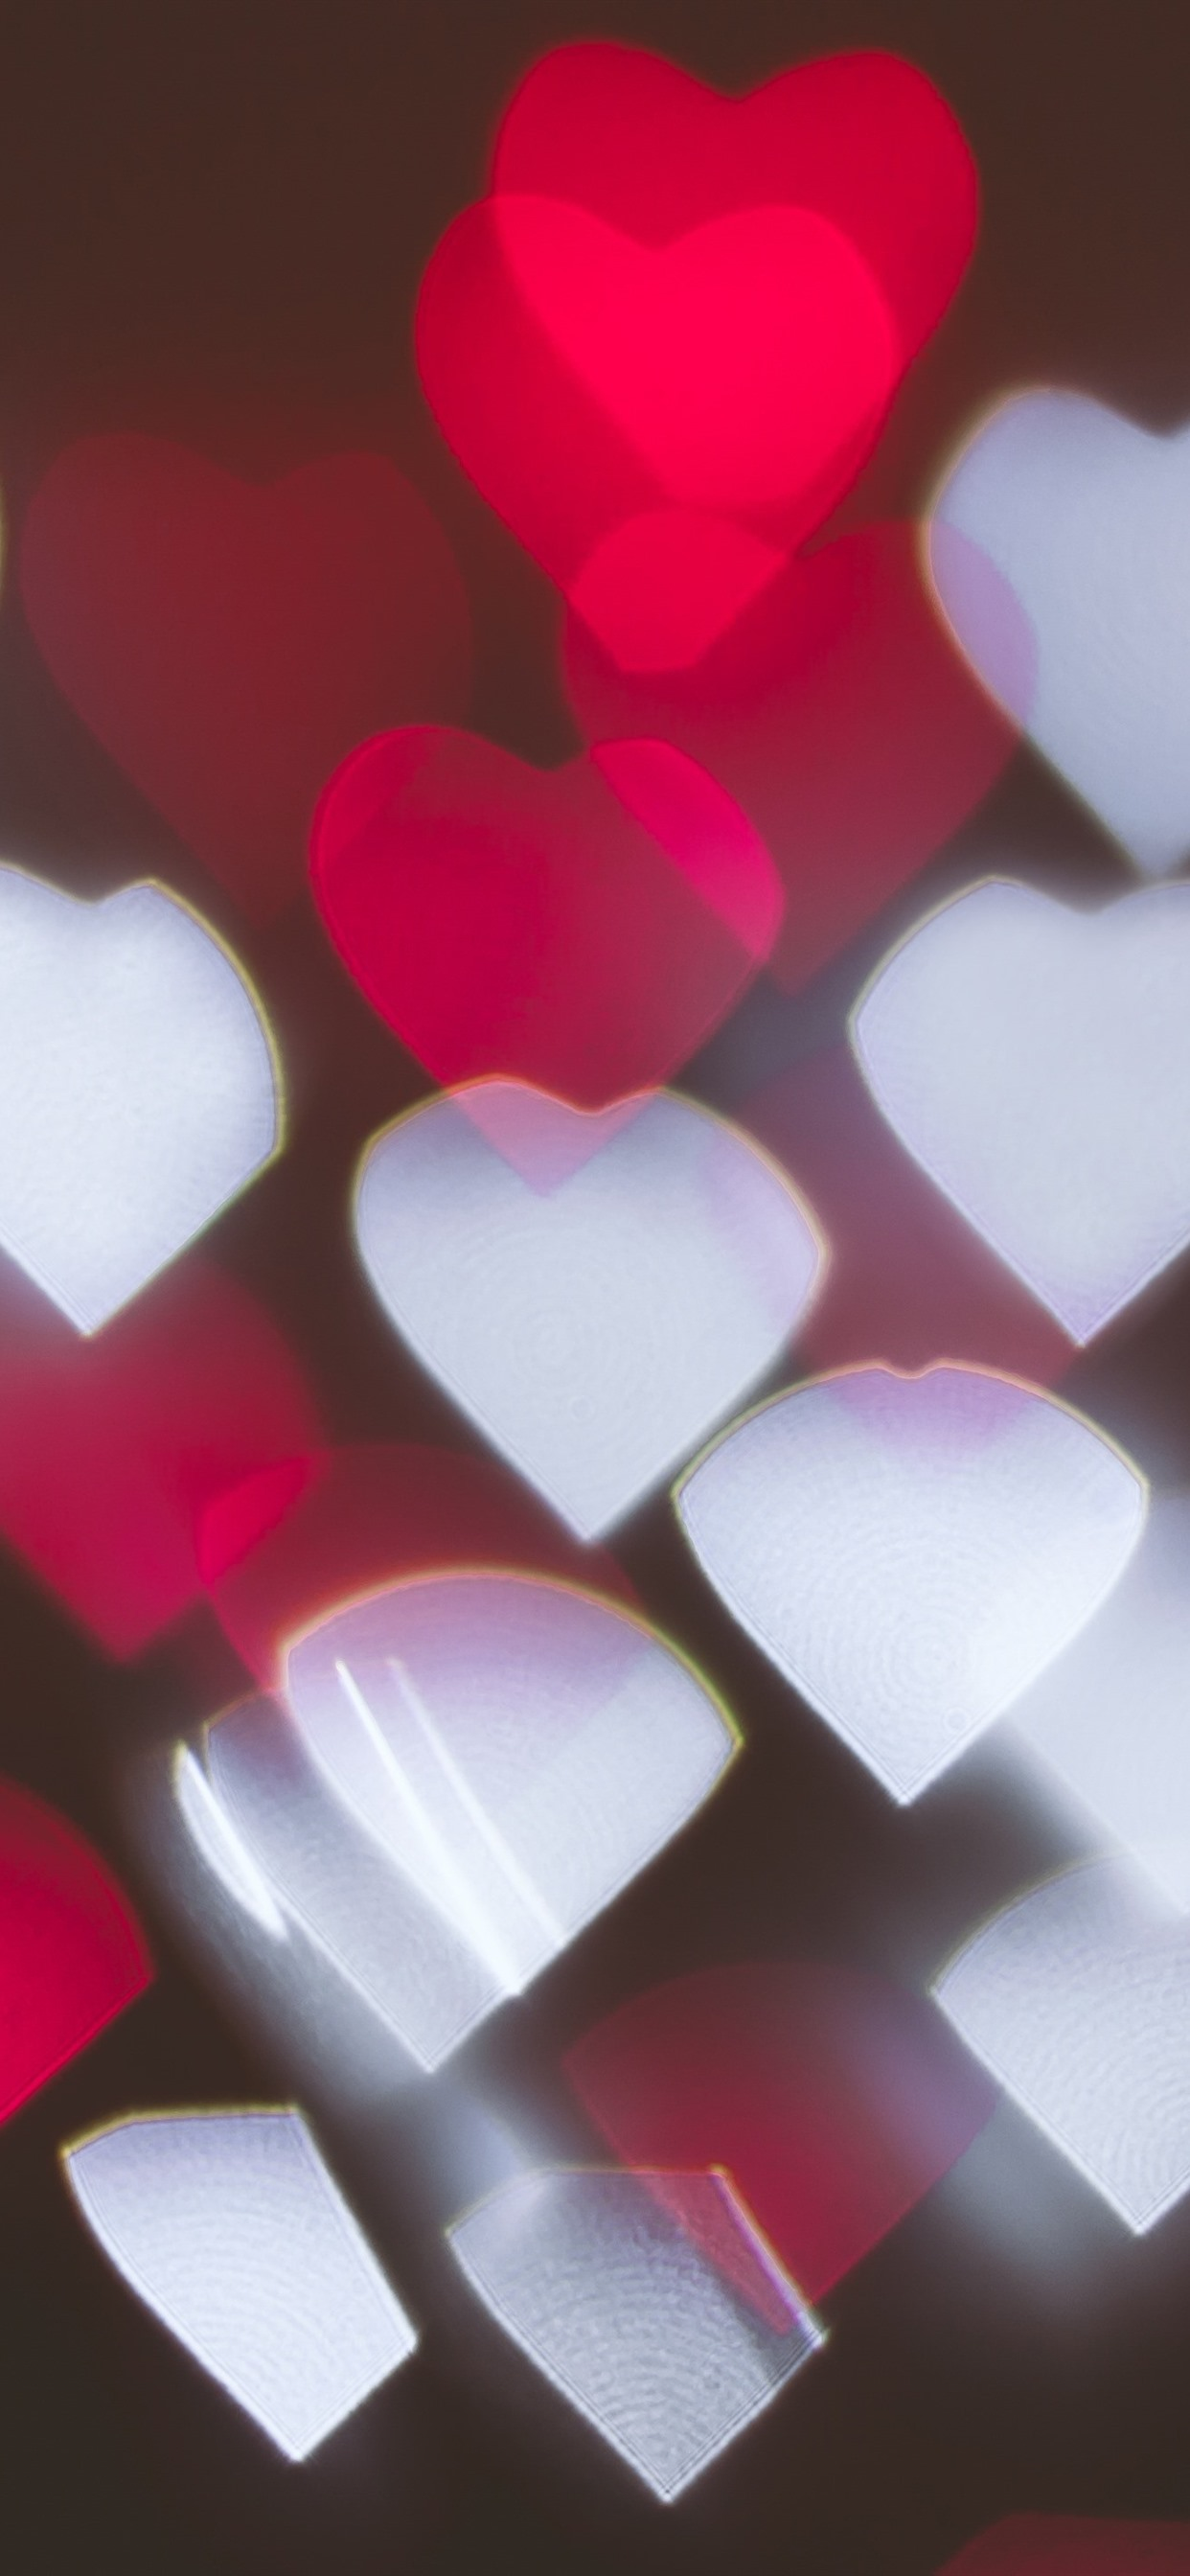 Many Red And White Love Hearts Light Abstract 1242x2688 Iphone